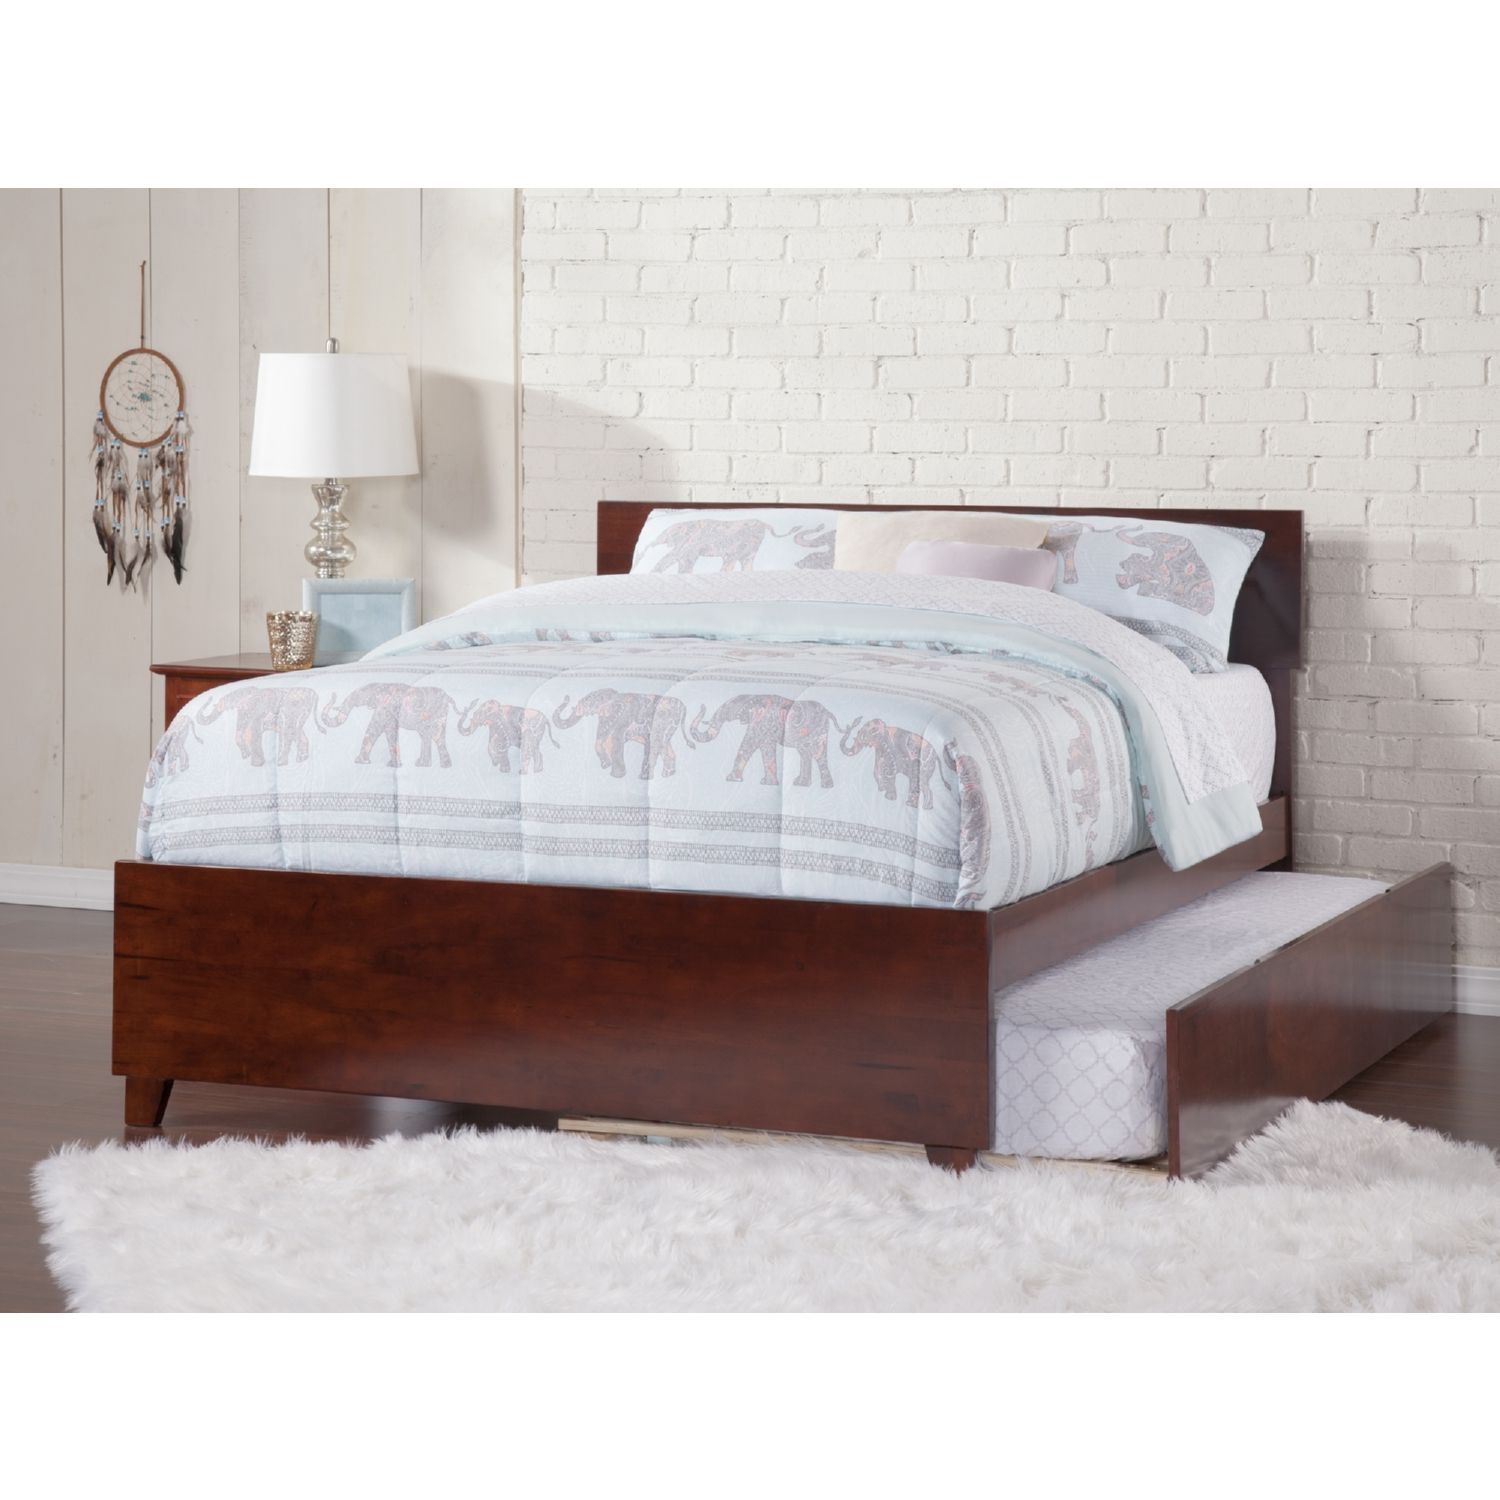 Atlantic Furniture Ar8136014 Orlando Full Bed Matching Footboard